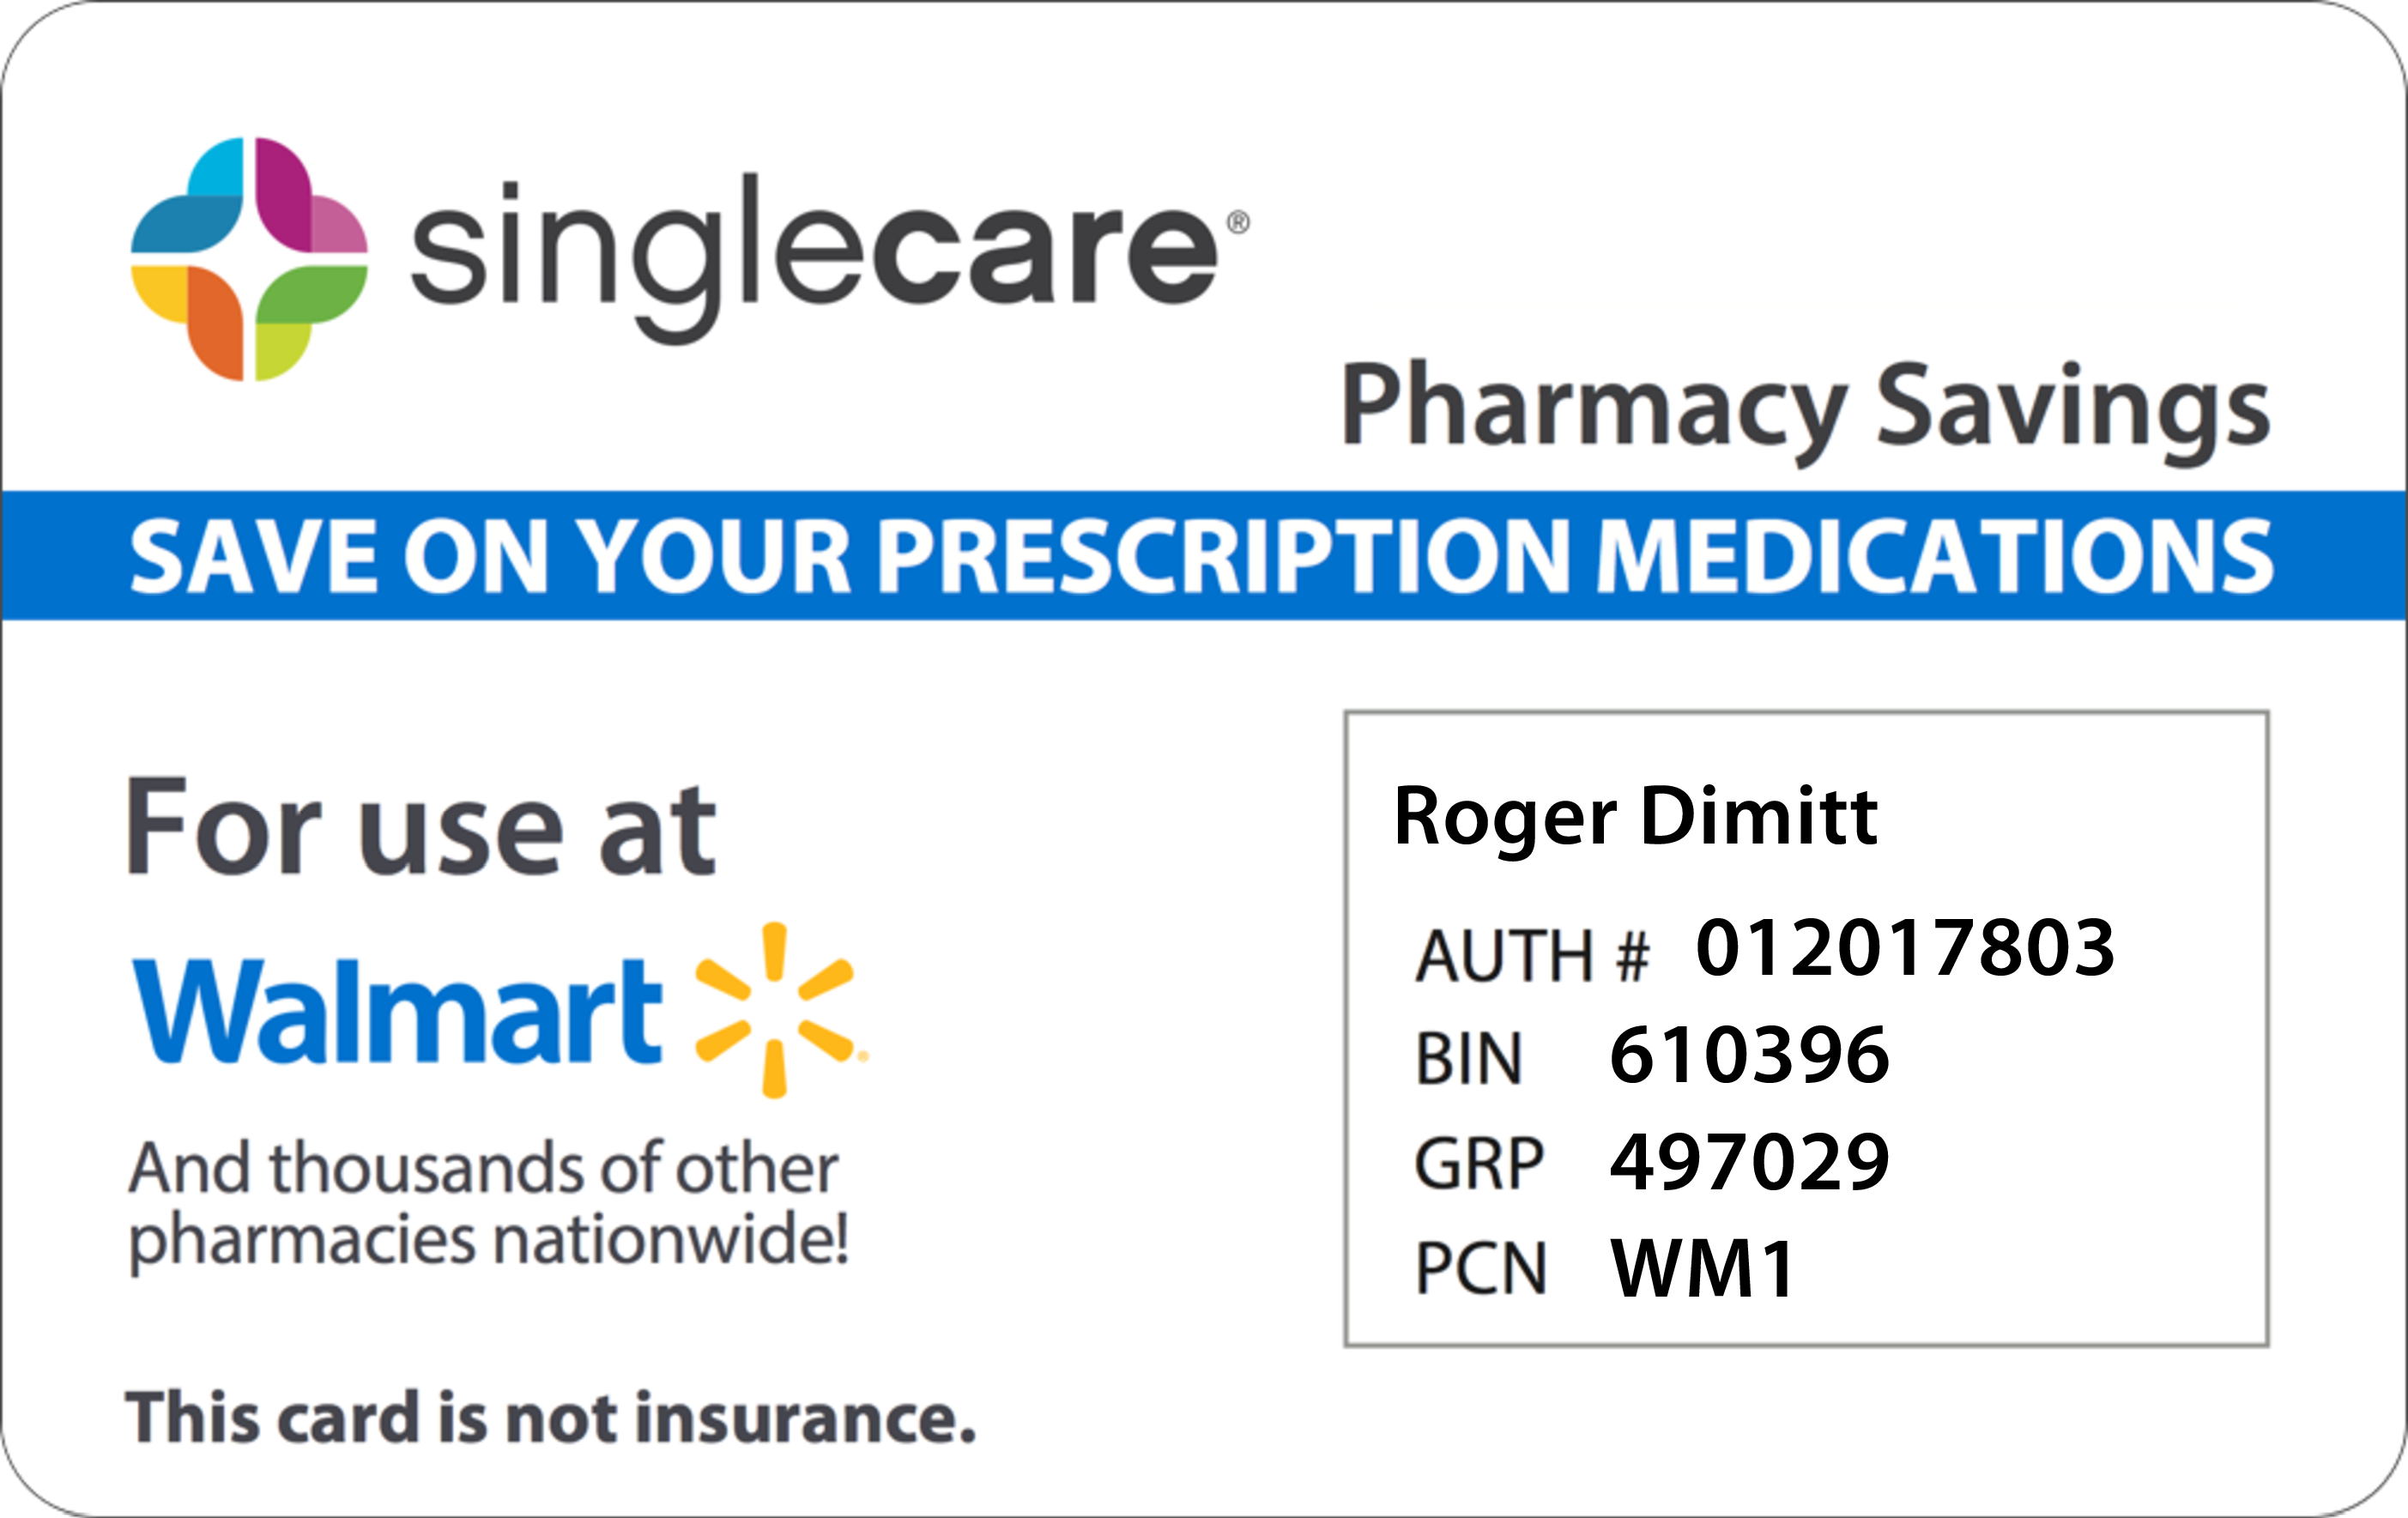 Here is your SingleCare card!